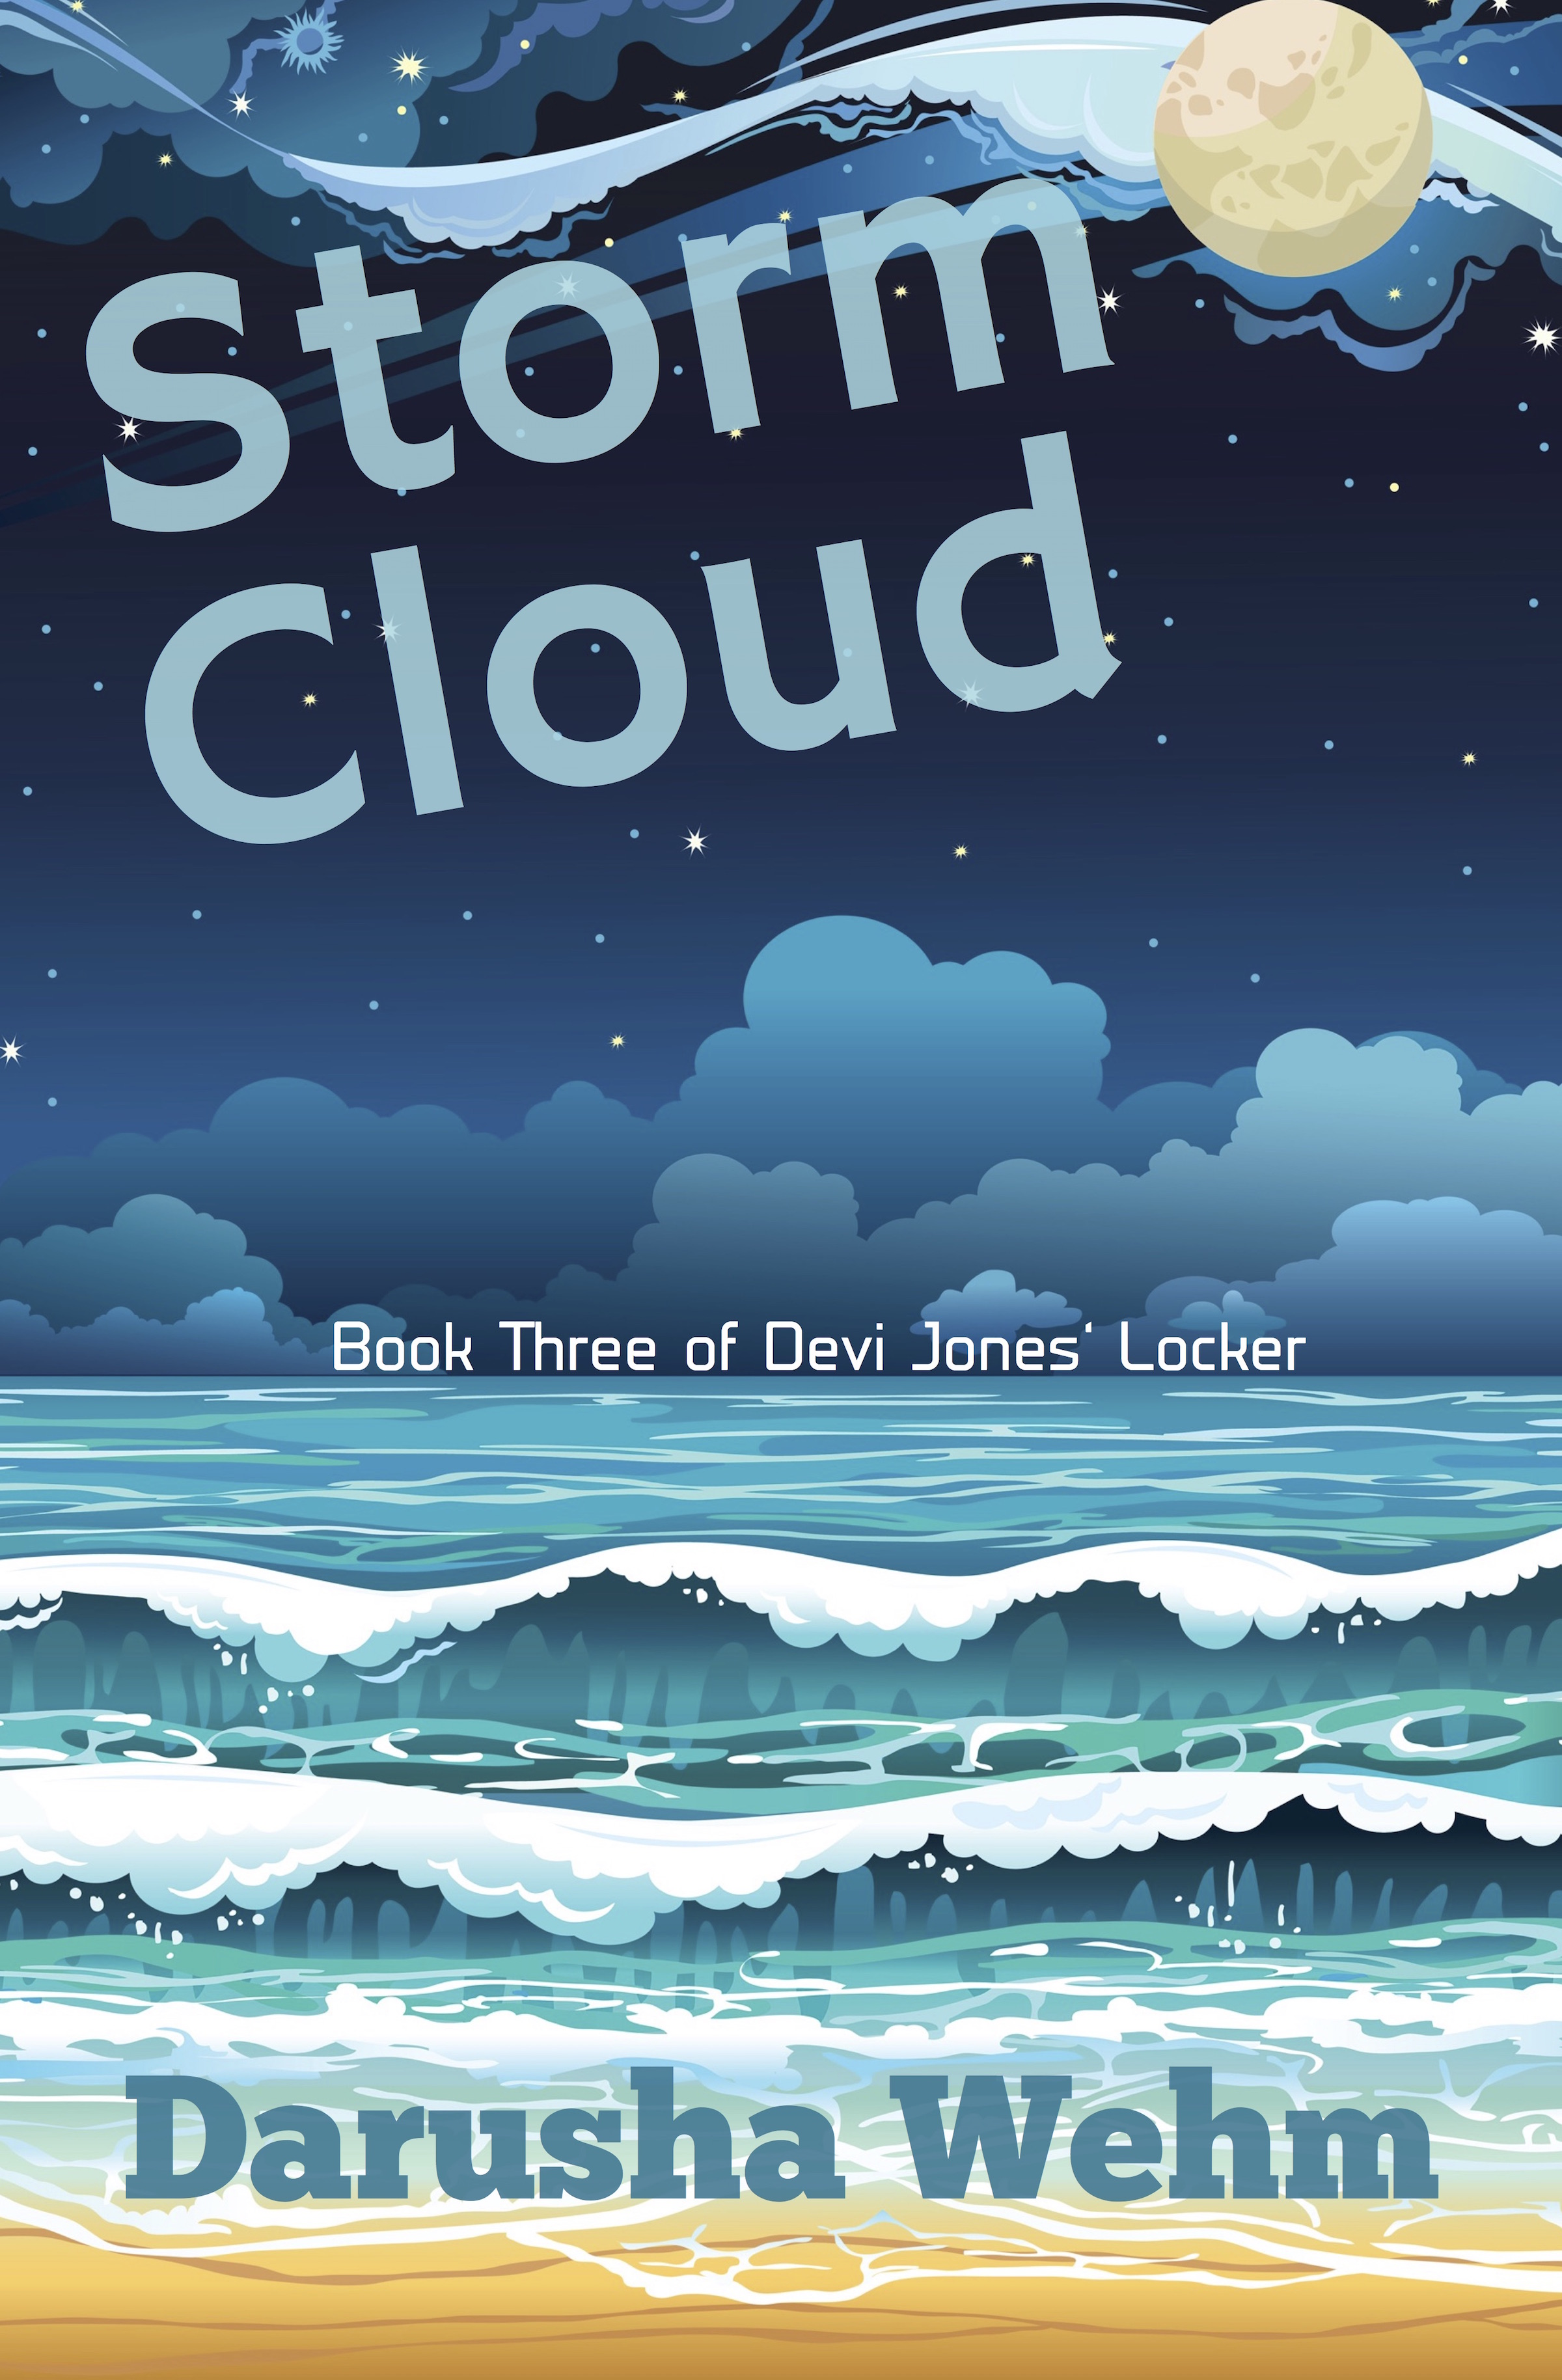 Storm Cloud, Book Three of Devi Jones' Locker, Out Today!